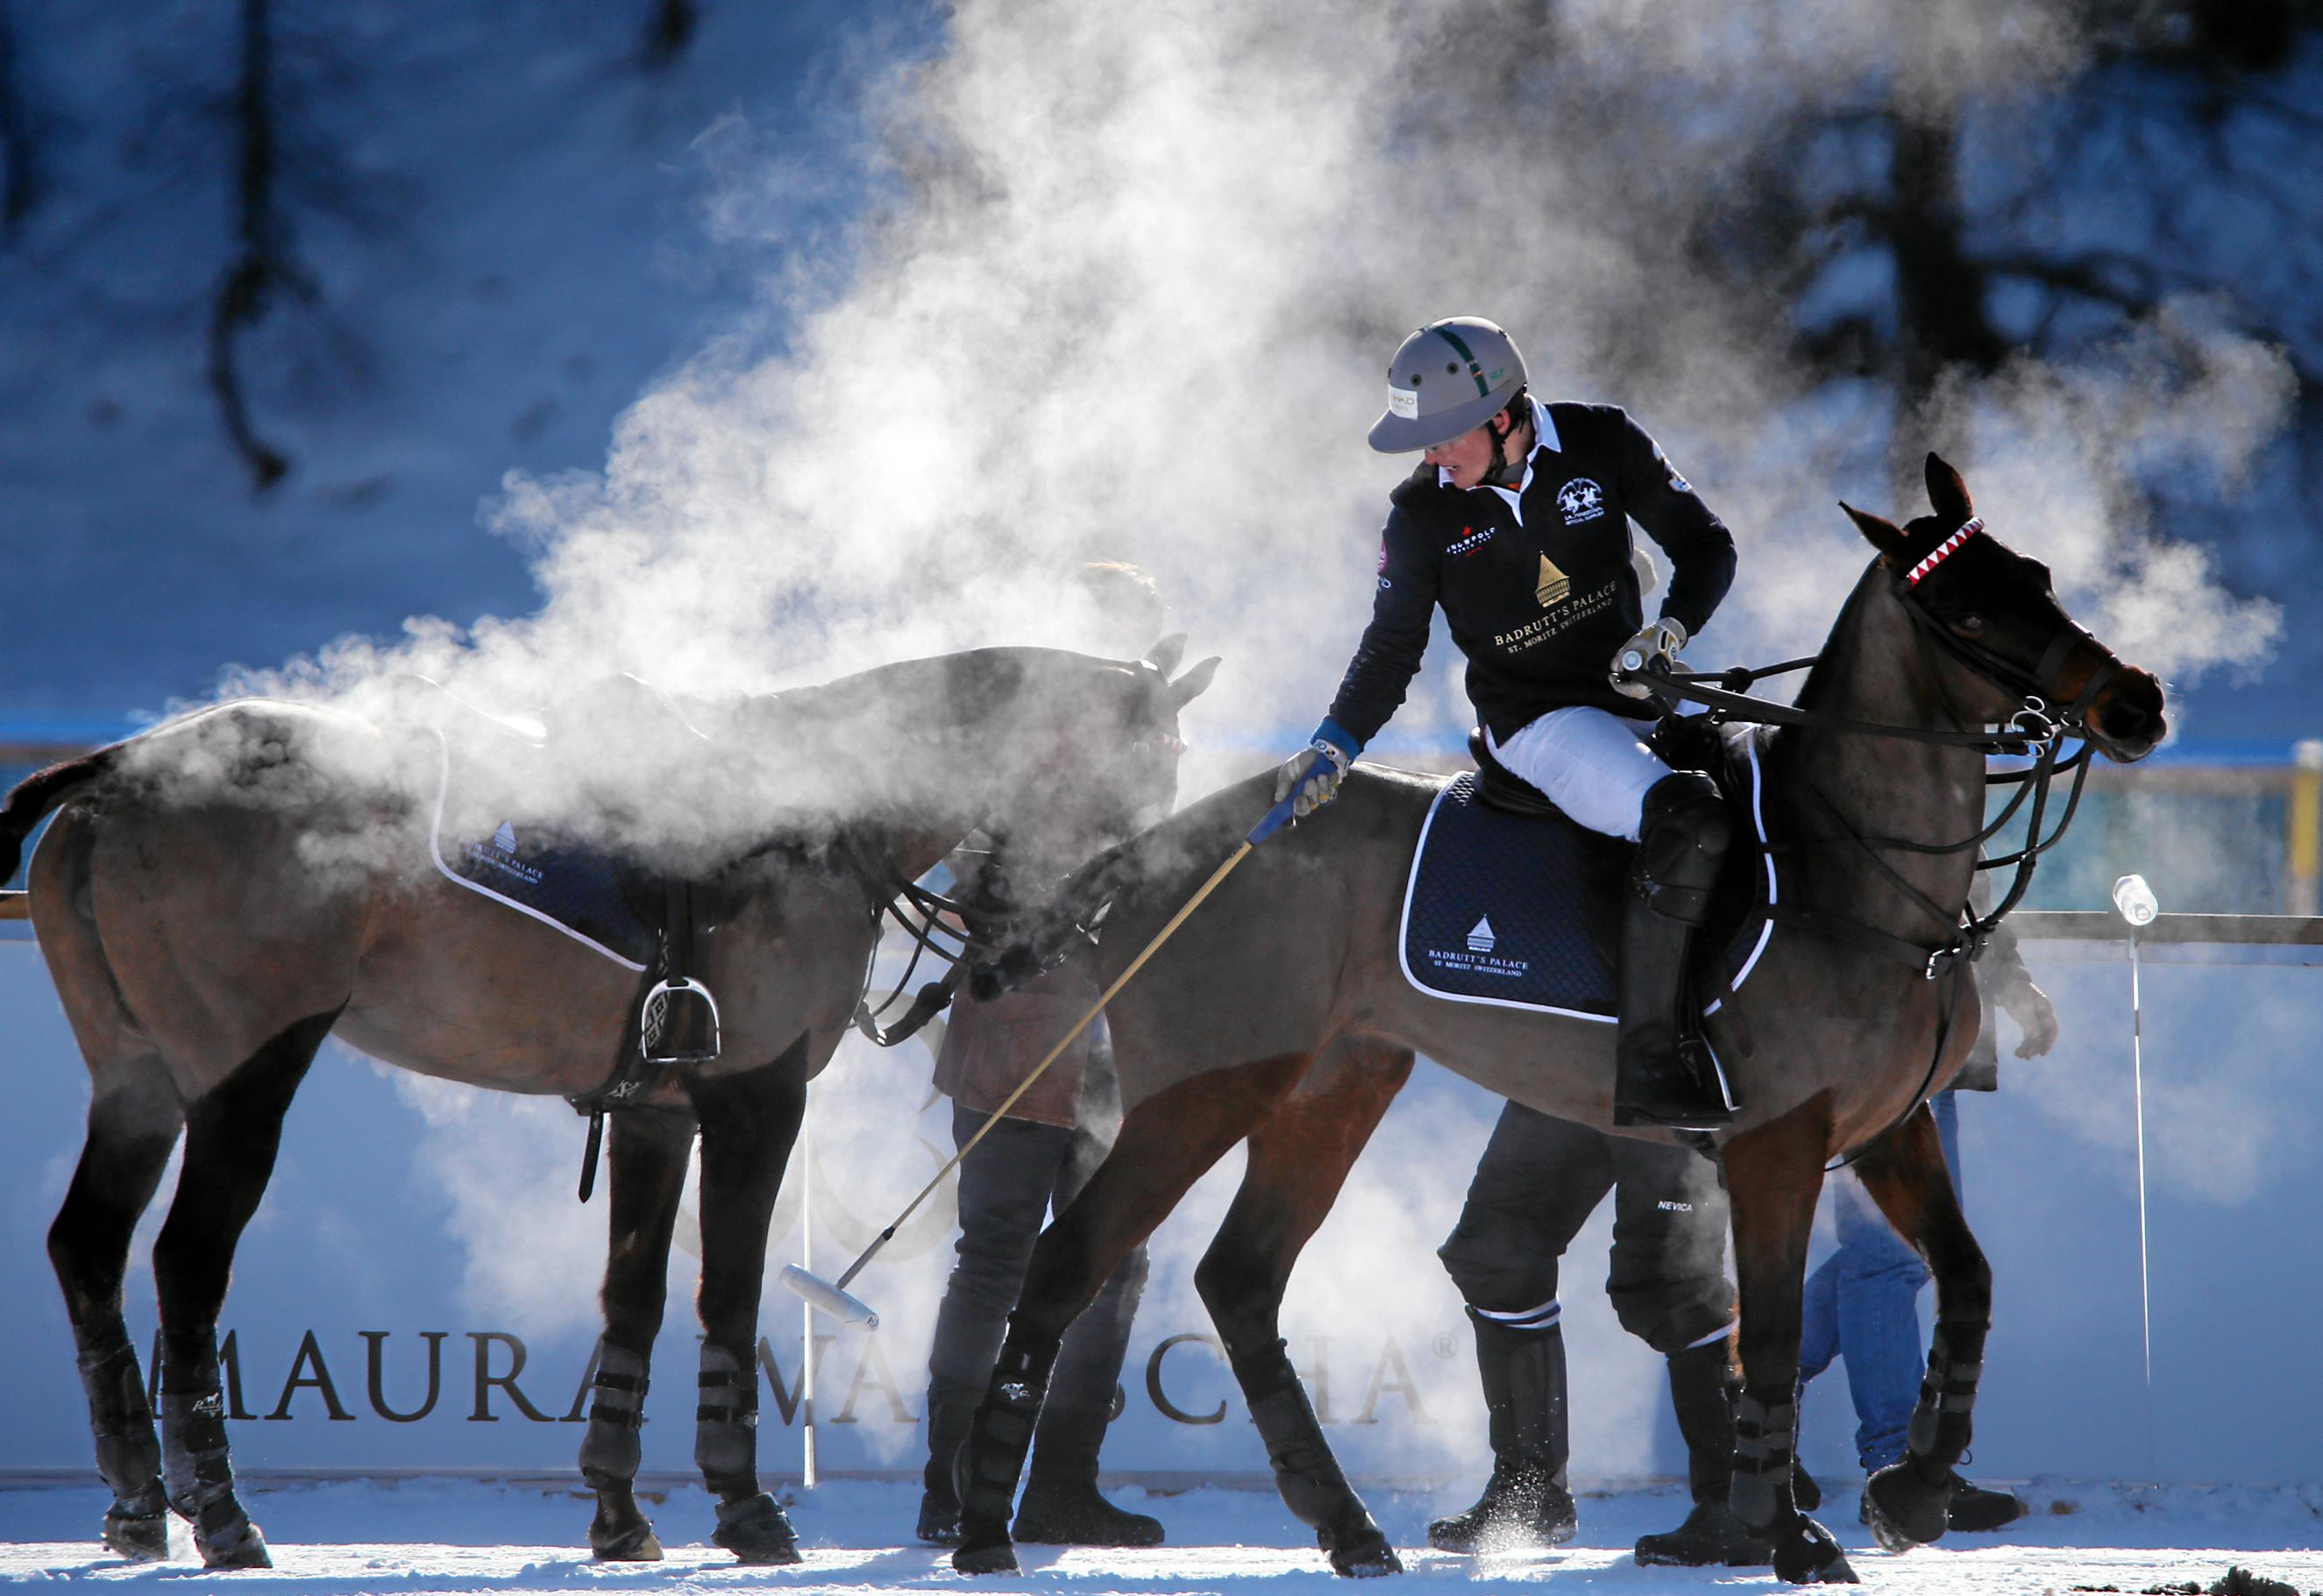 Snow Polo World Cup St. Moritz: Impression